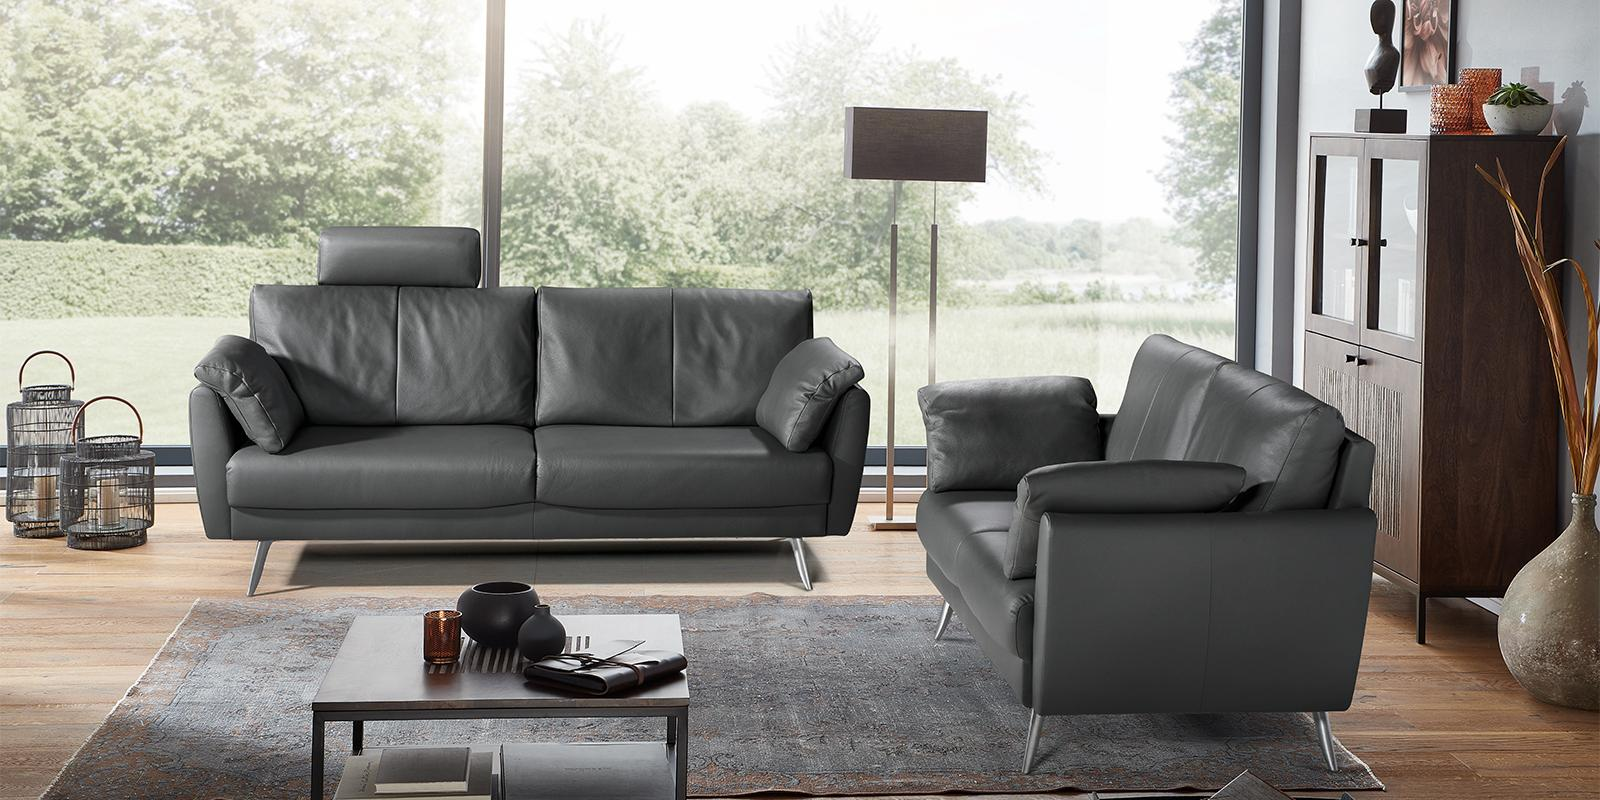 horst collection visp sofa design moebel schwarz leder